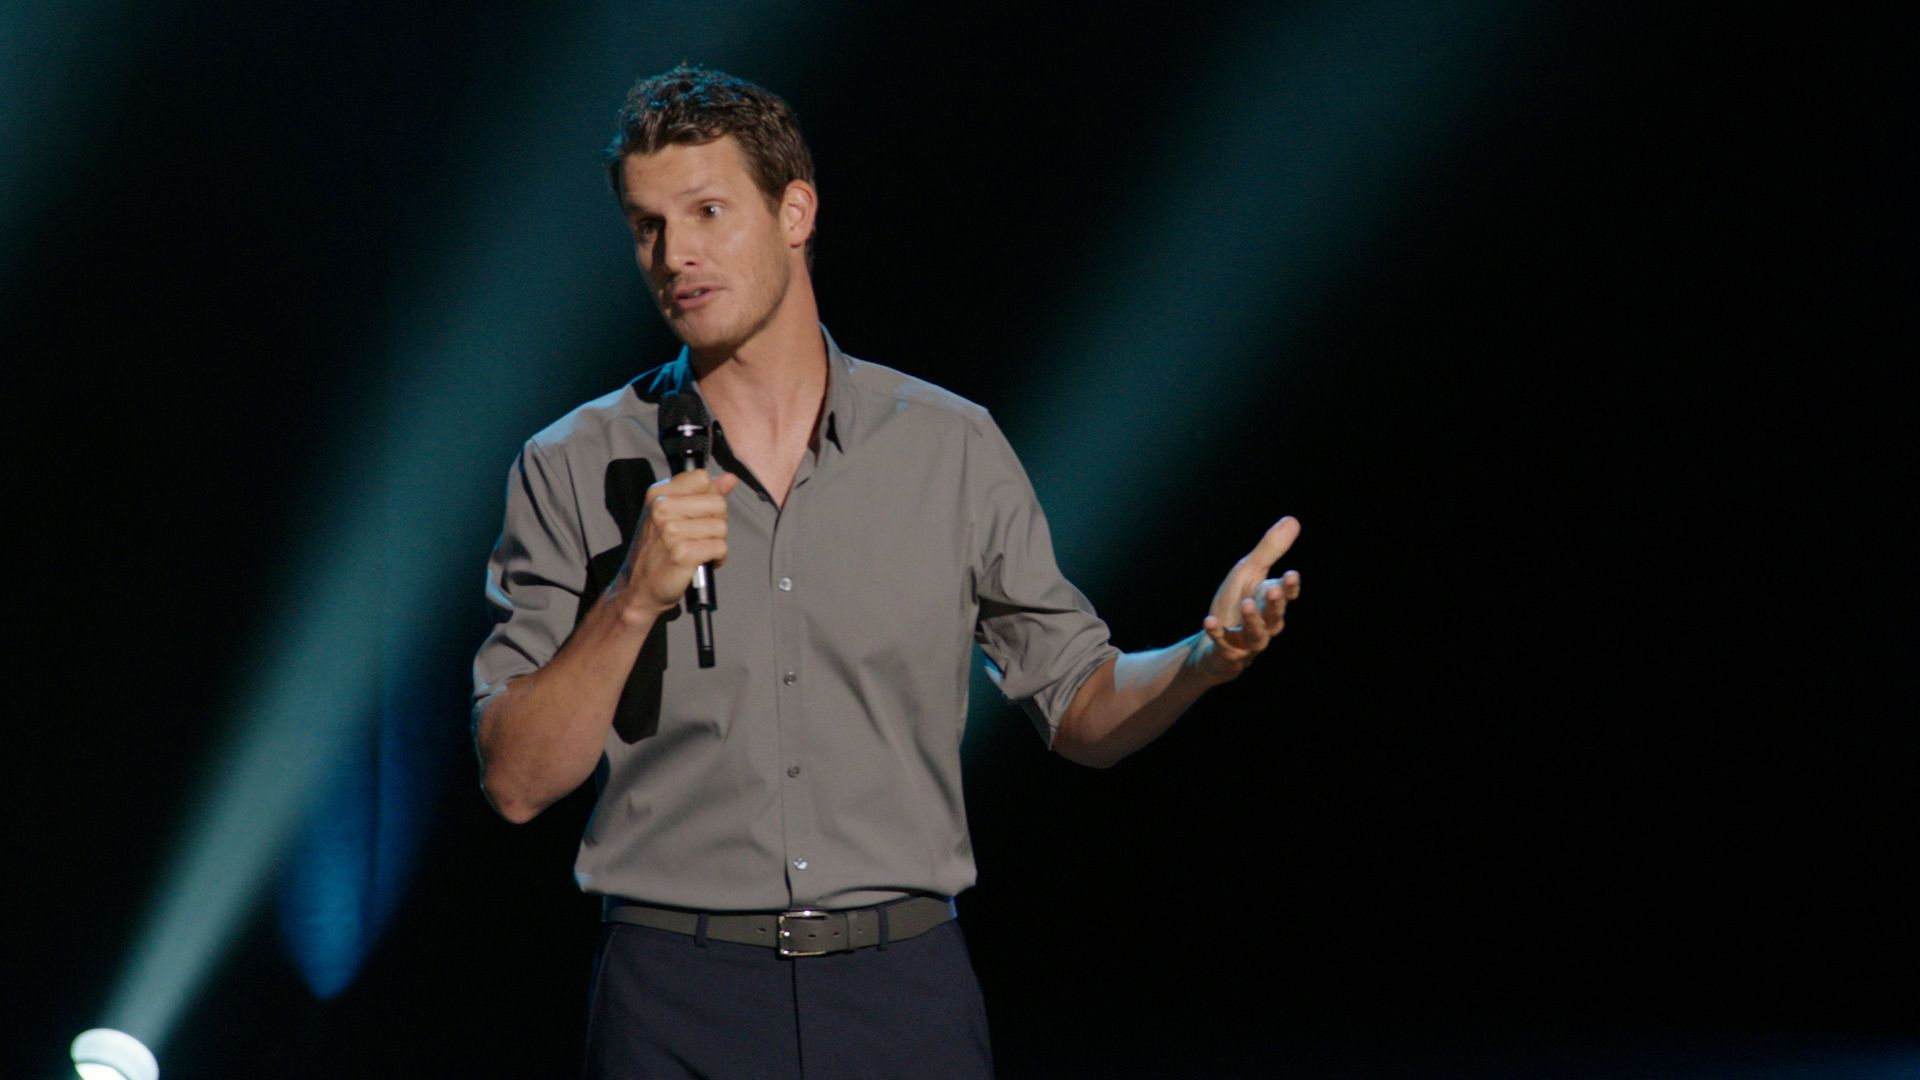 daniel tosh bumper stickers amp texting while driving